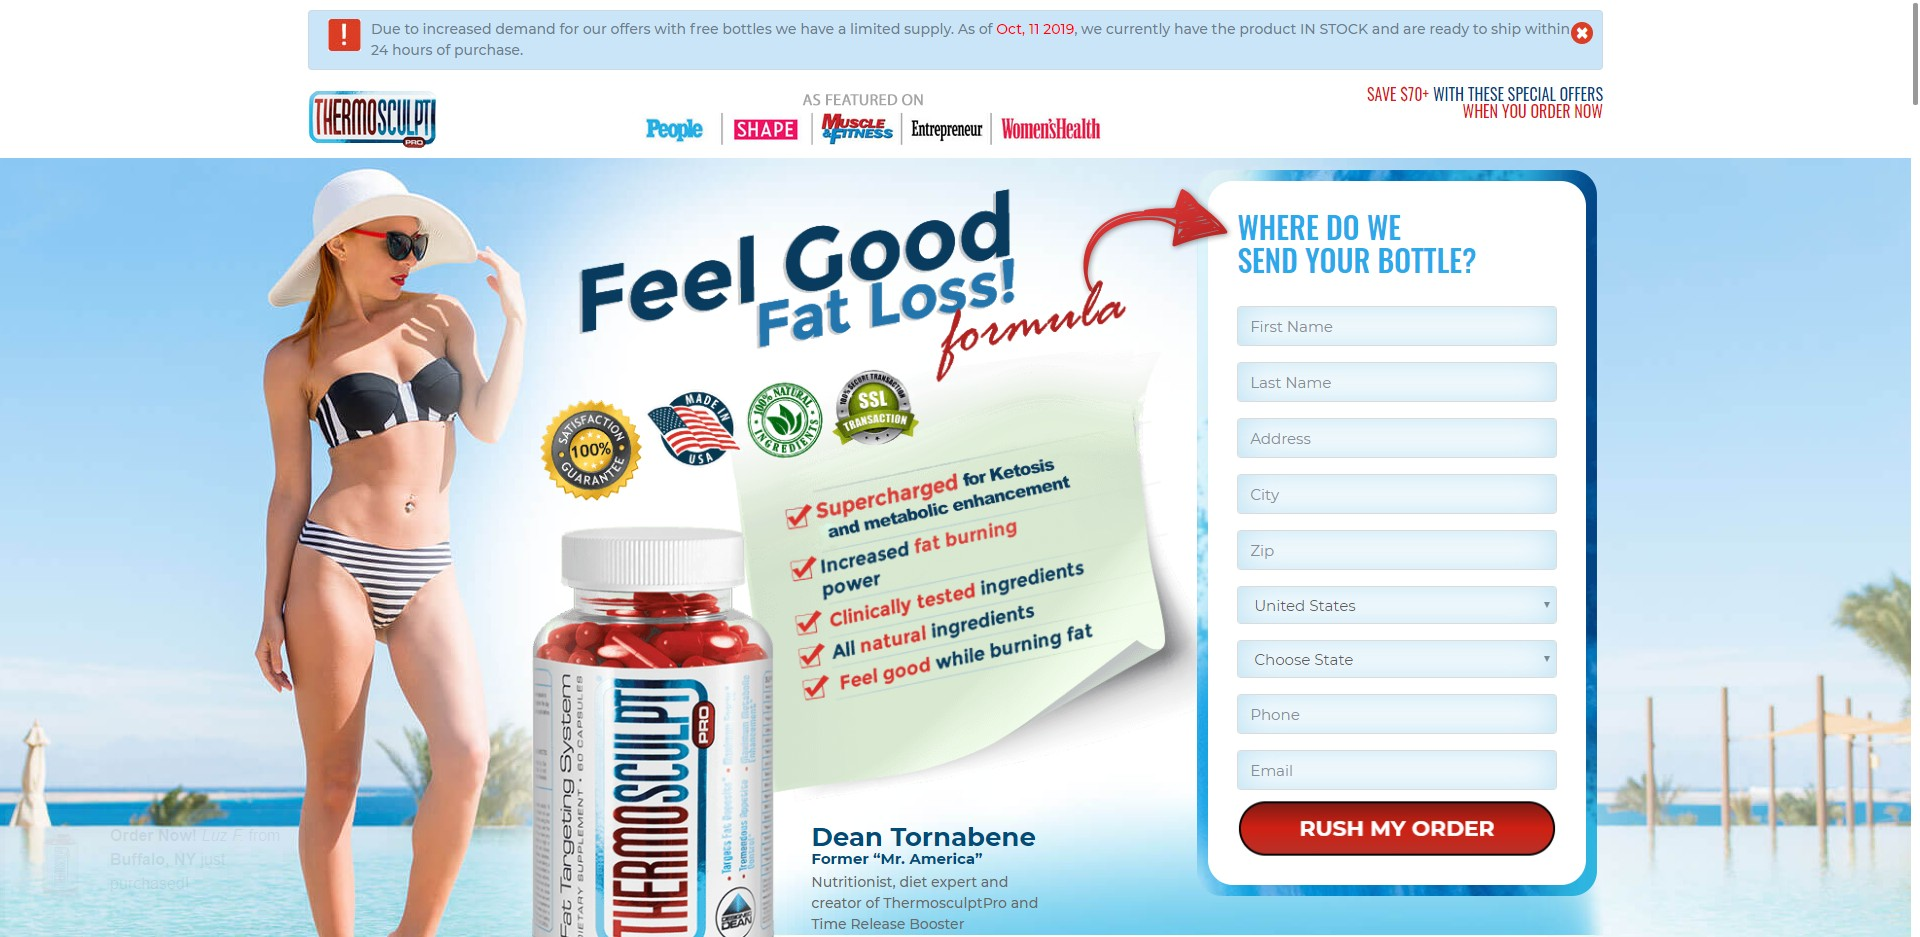 Thermosculpt Pro Diet